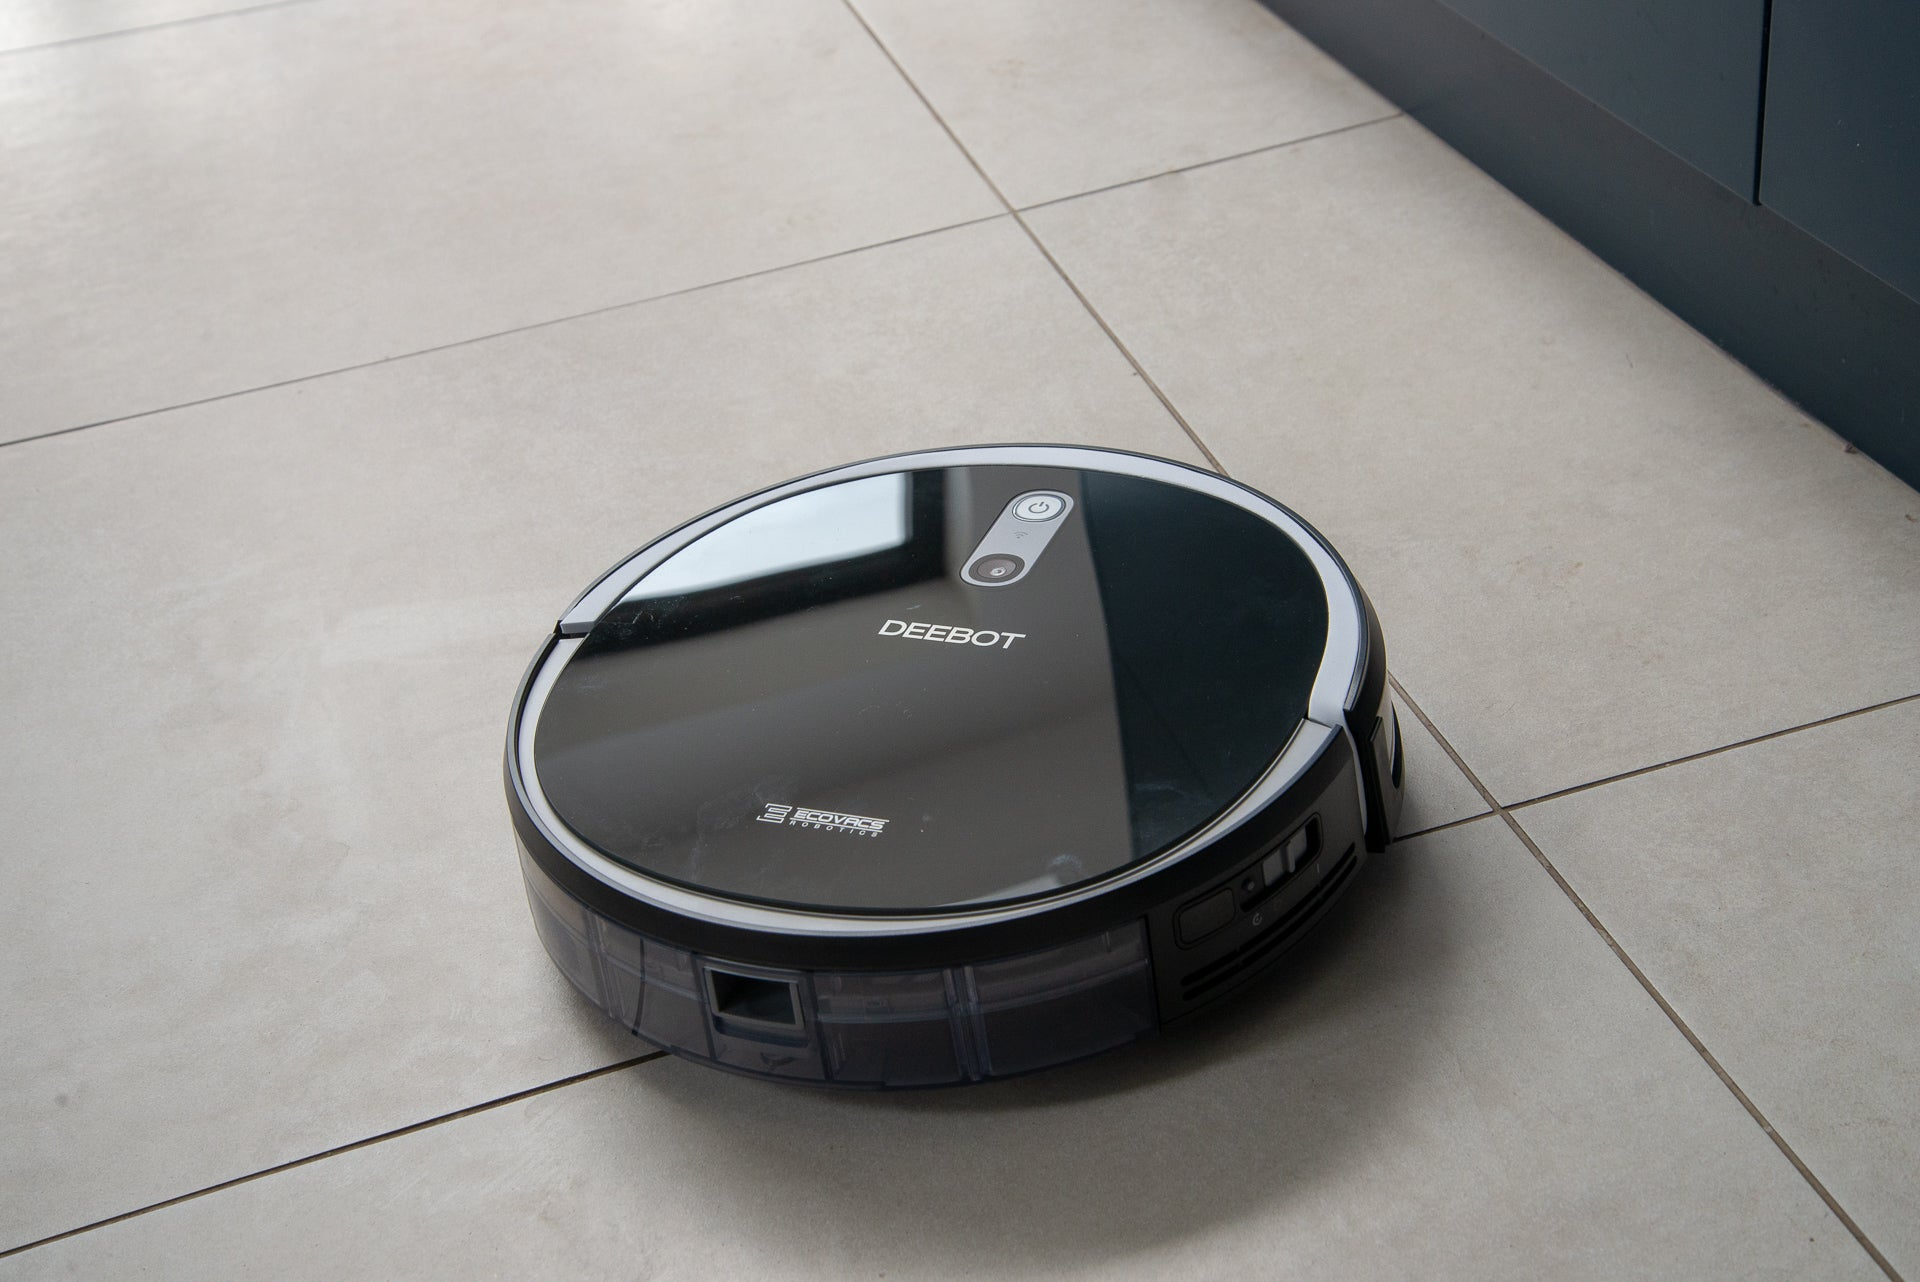 Best robot vacuum for carpets, hardwood and mopping